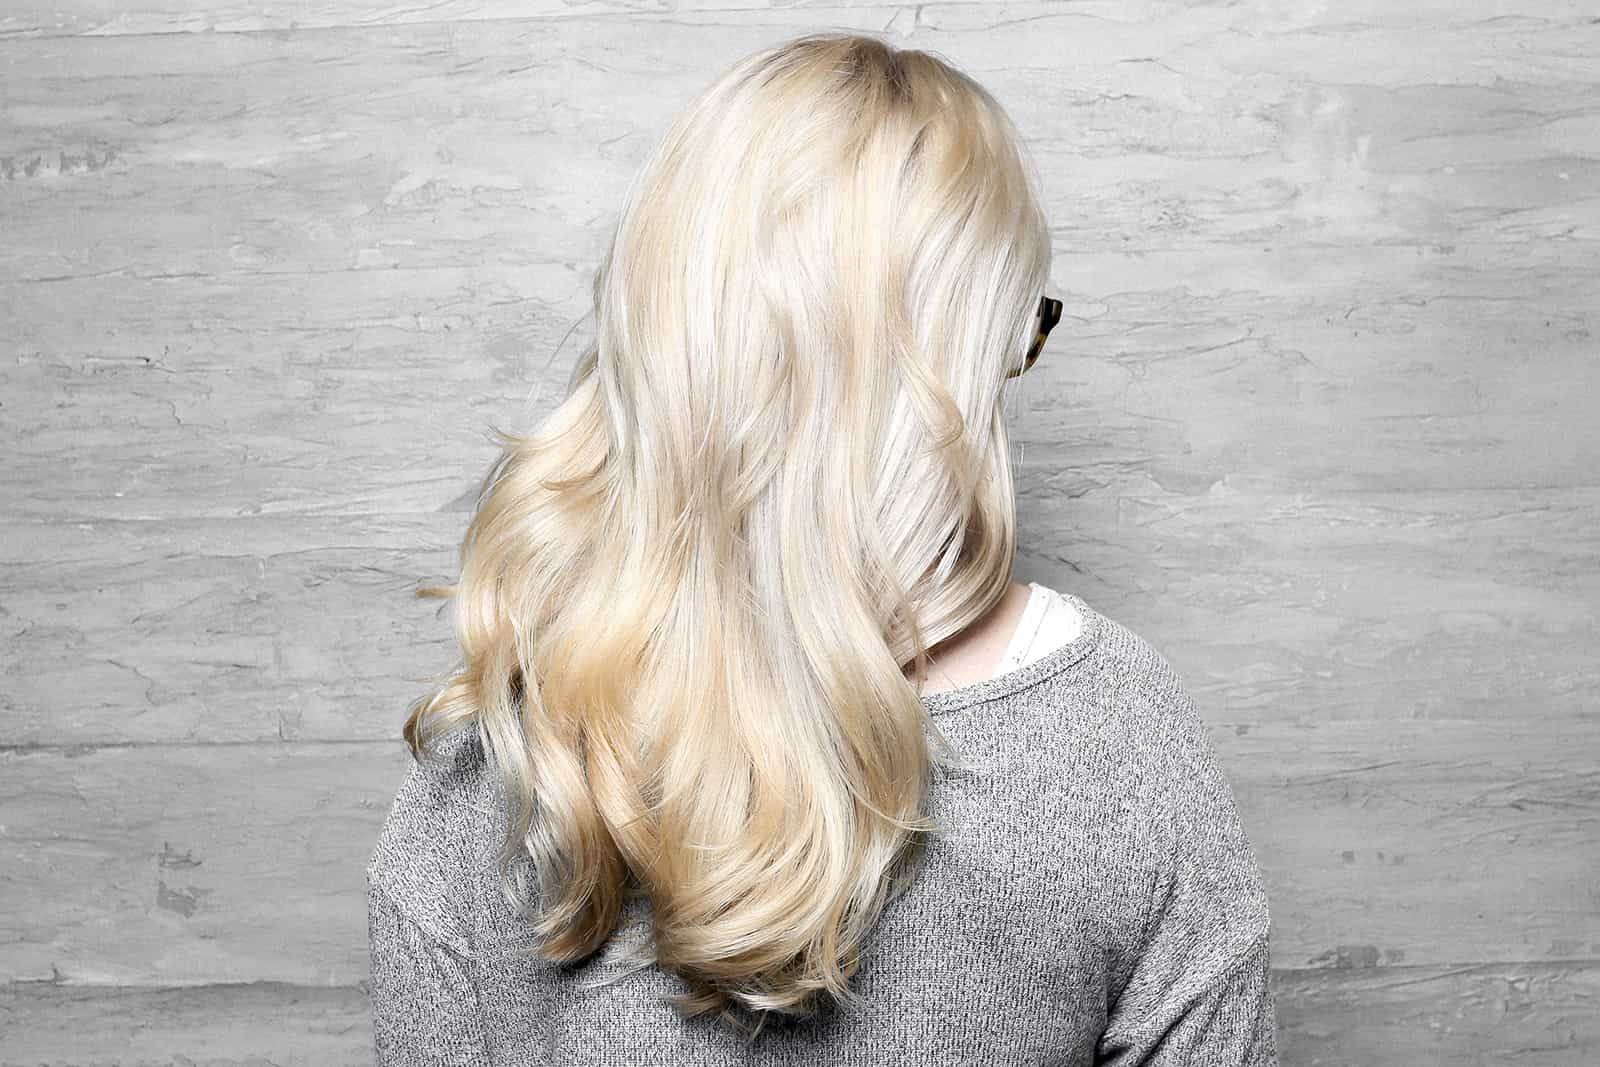 Blow out hair with smooth brushed out curls